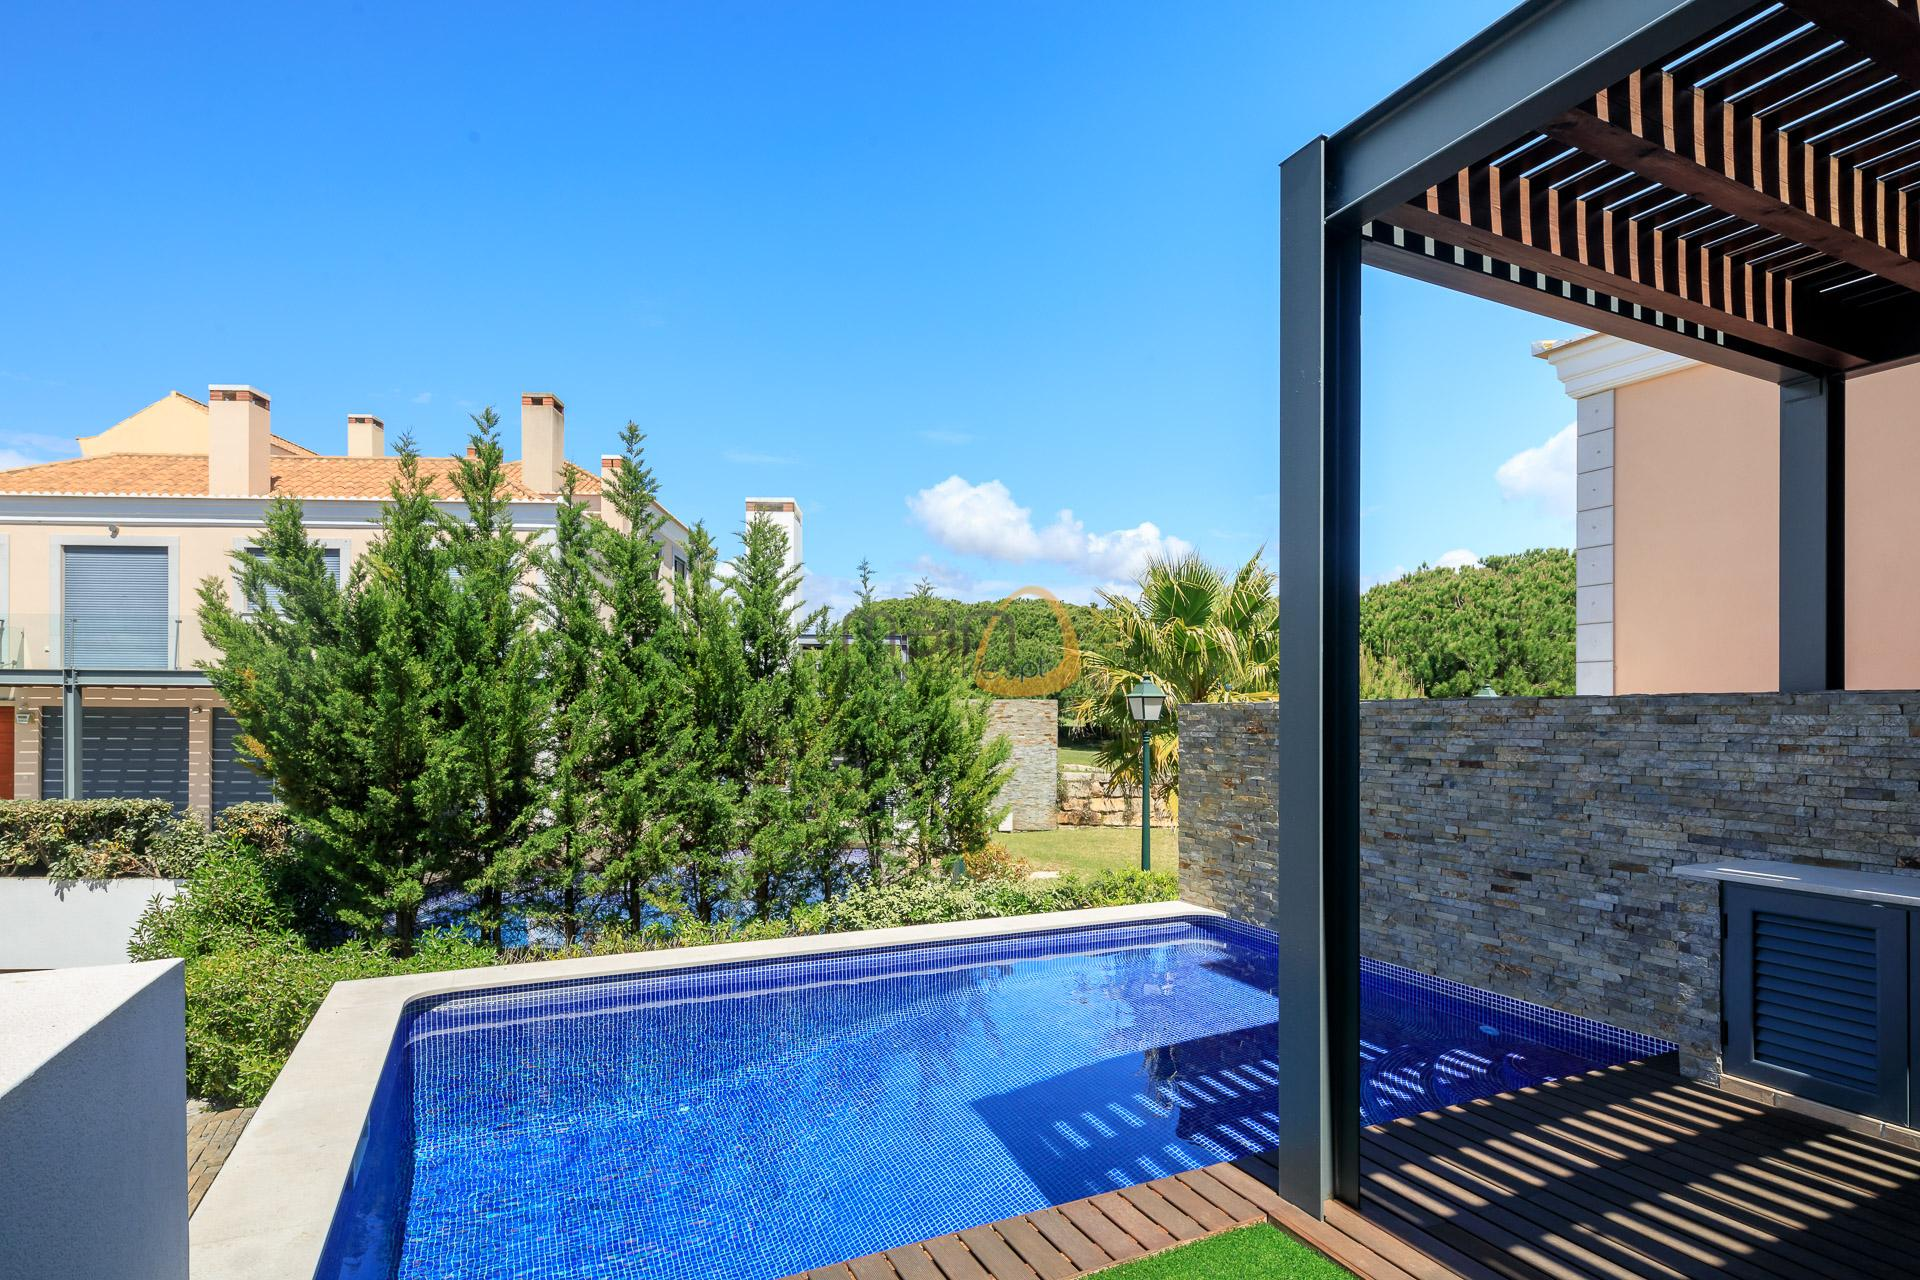 villa-in-vale-do-lobo-algarve-golden-triangle-portugal-property-real-estate-mainproperties-mp138vdl-0